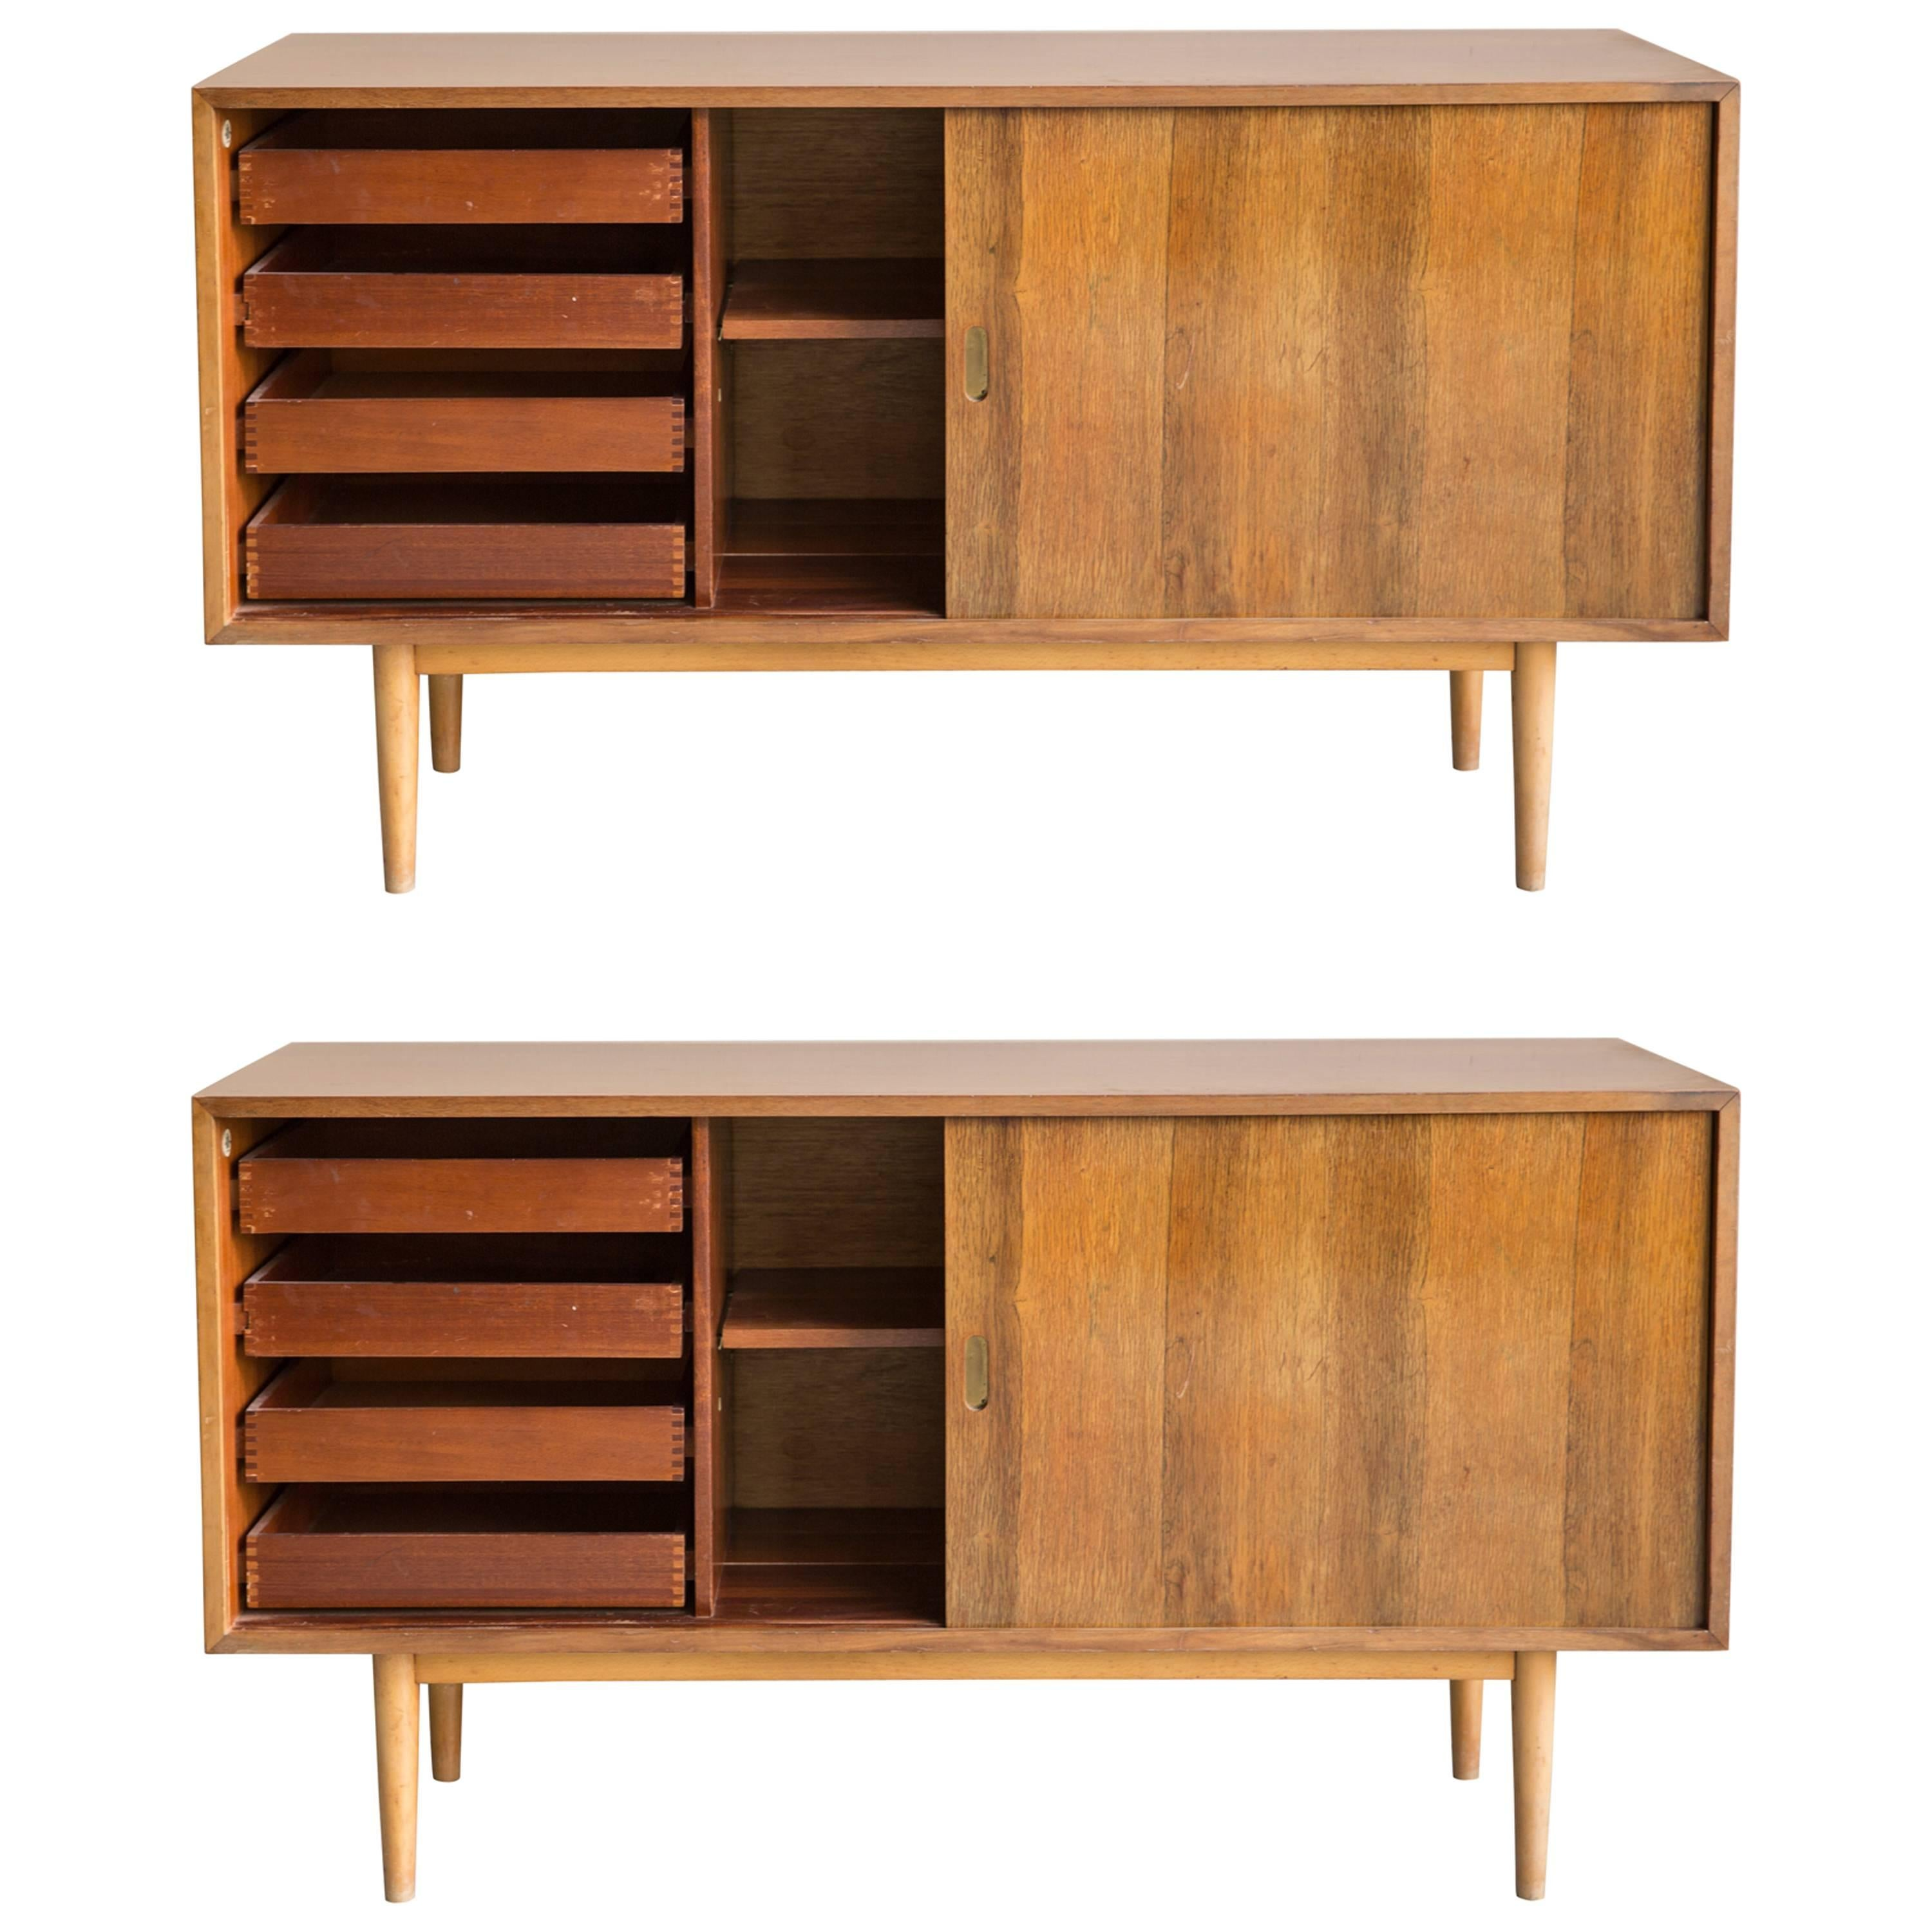 Designer Sideboards Pair Of Unit L Interplan Sideboards Designed By Robin Day For Hille Circa 1954